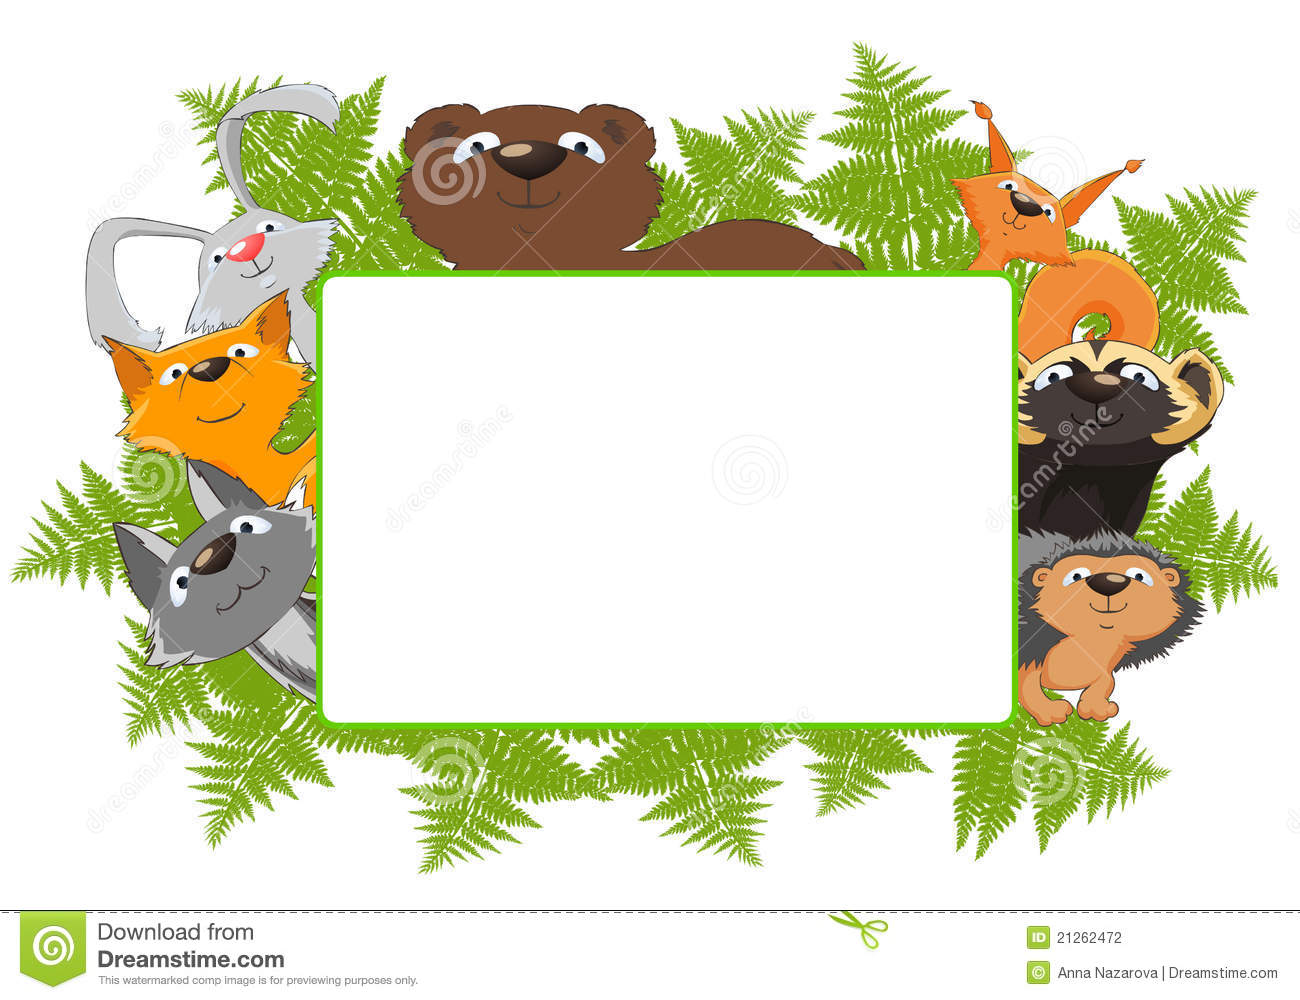 Fall Woodland Creatures Wallpaper Frame Of Forest Animals Stock Illustration Illustration